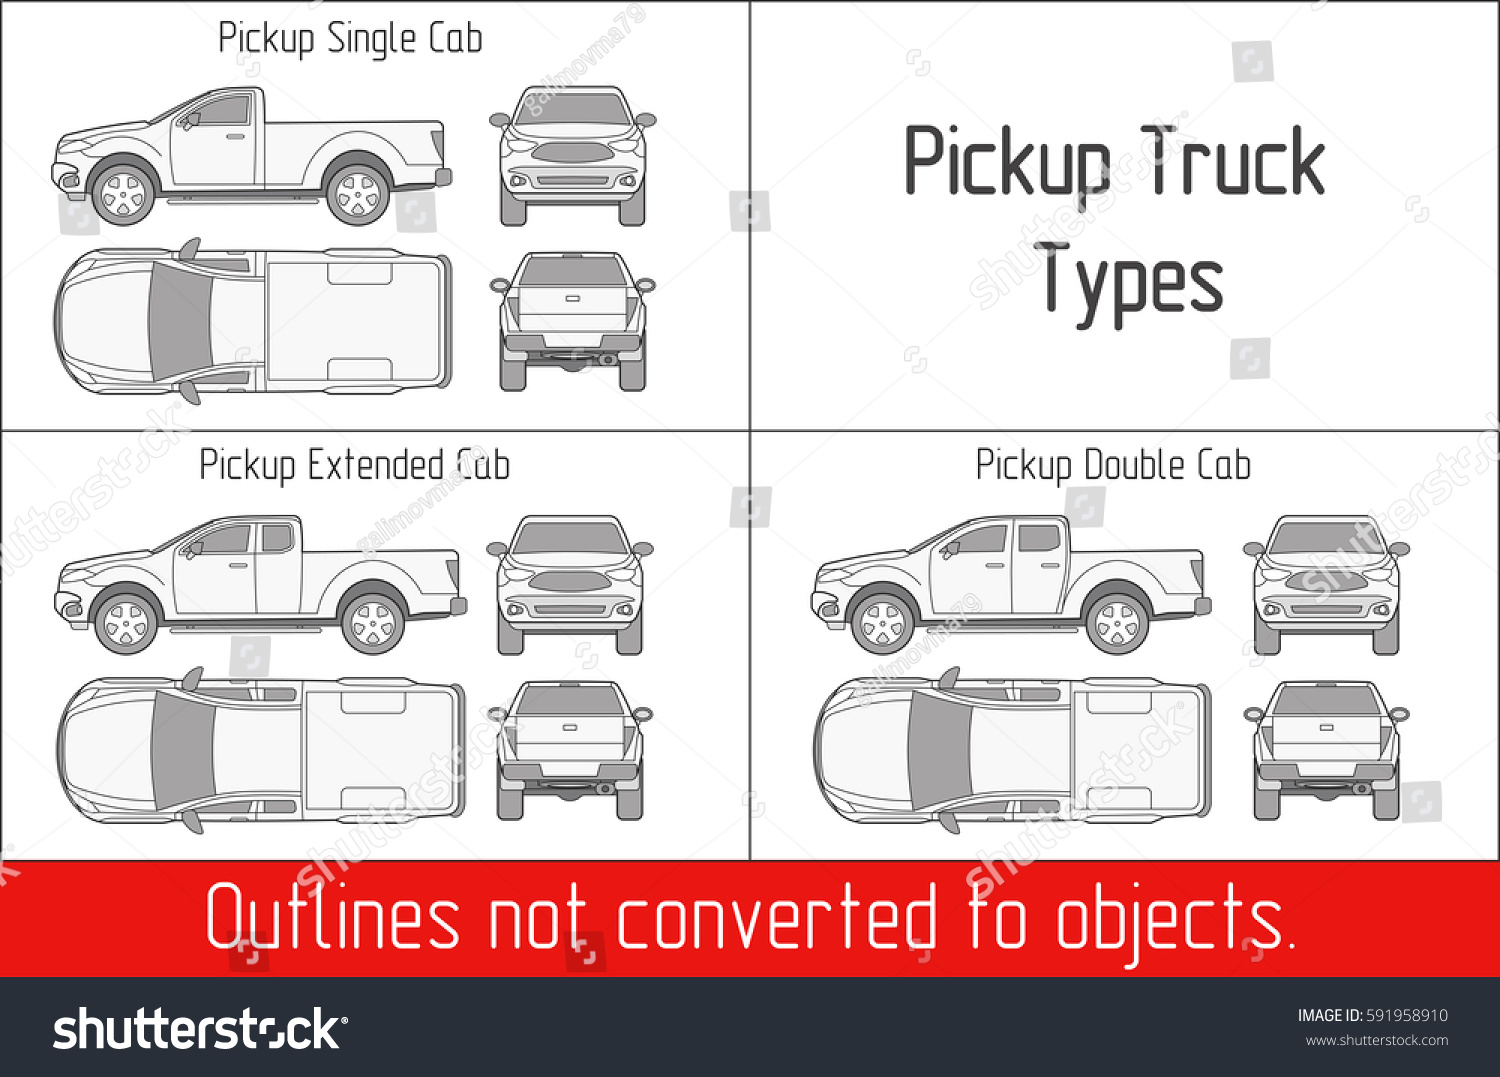 Truck pickup types template blueprint drawing vectores en stock truck pickup types template blueprint drawing outline strokes not expanded malvernweather Images